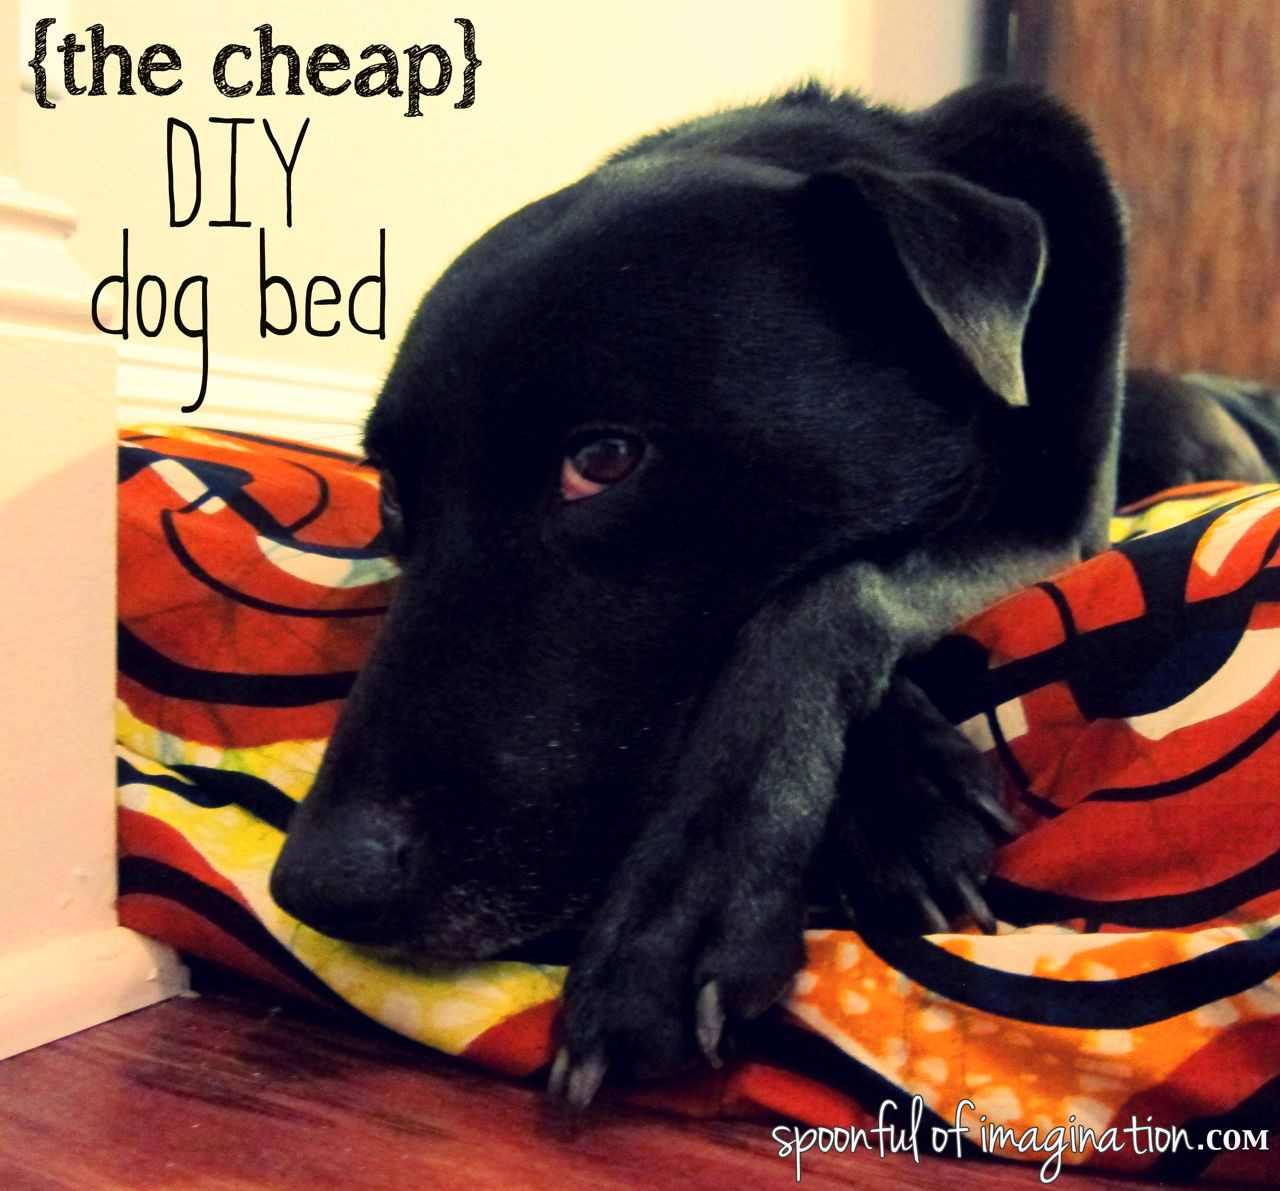 Best ideas about DIY Dog Bed For Large Dogs . Save or Pin DIY Cheap Dog Bed Spoonful of Imagination Now.